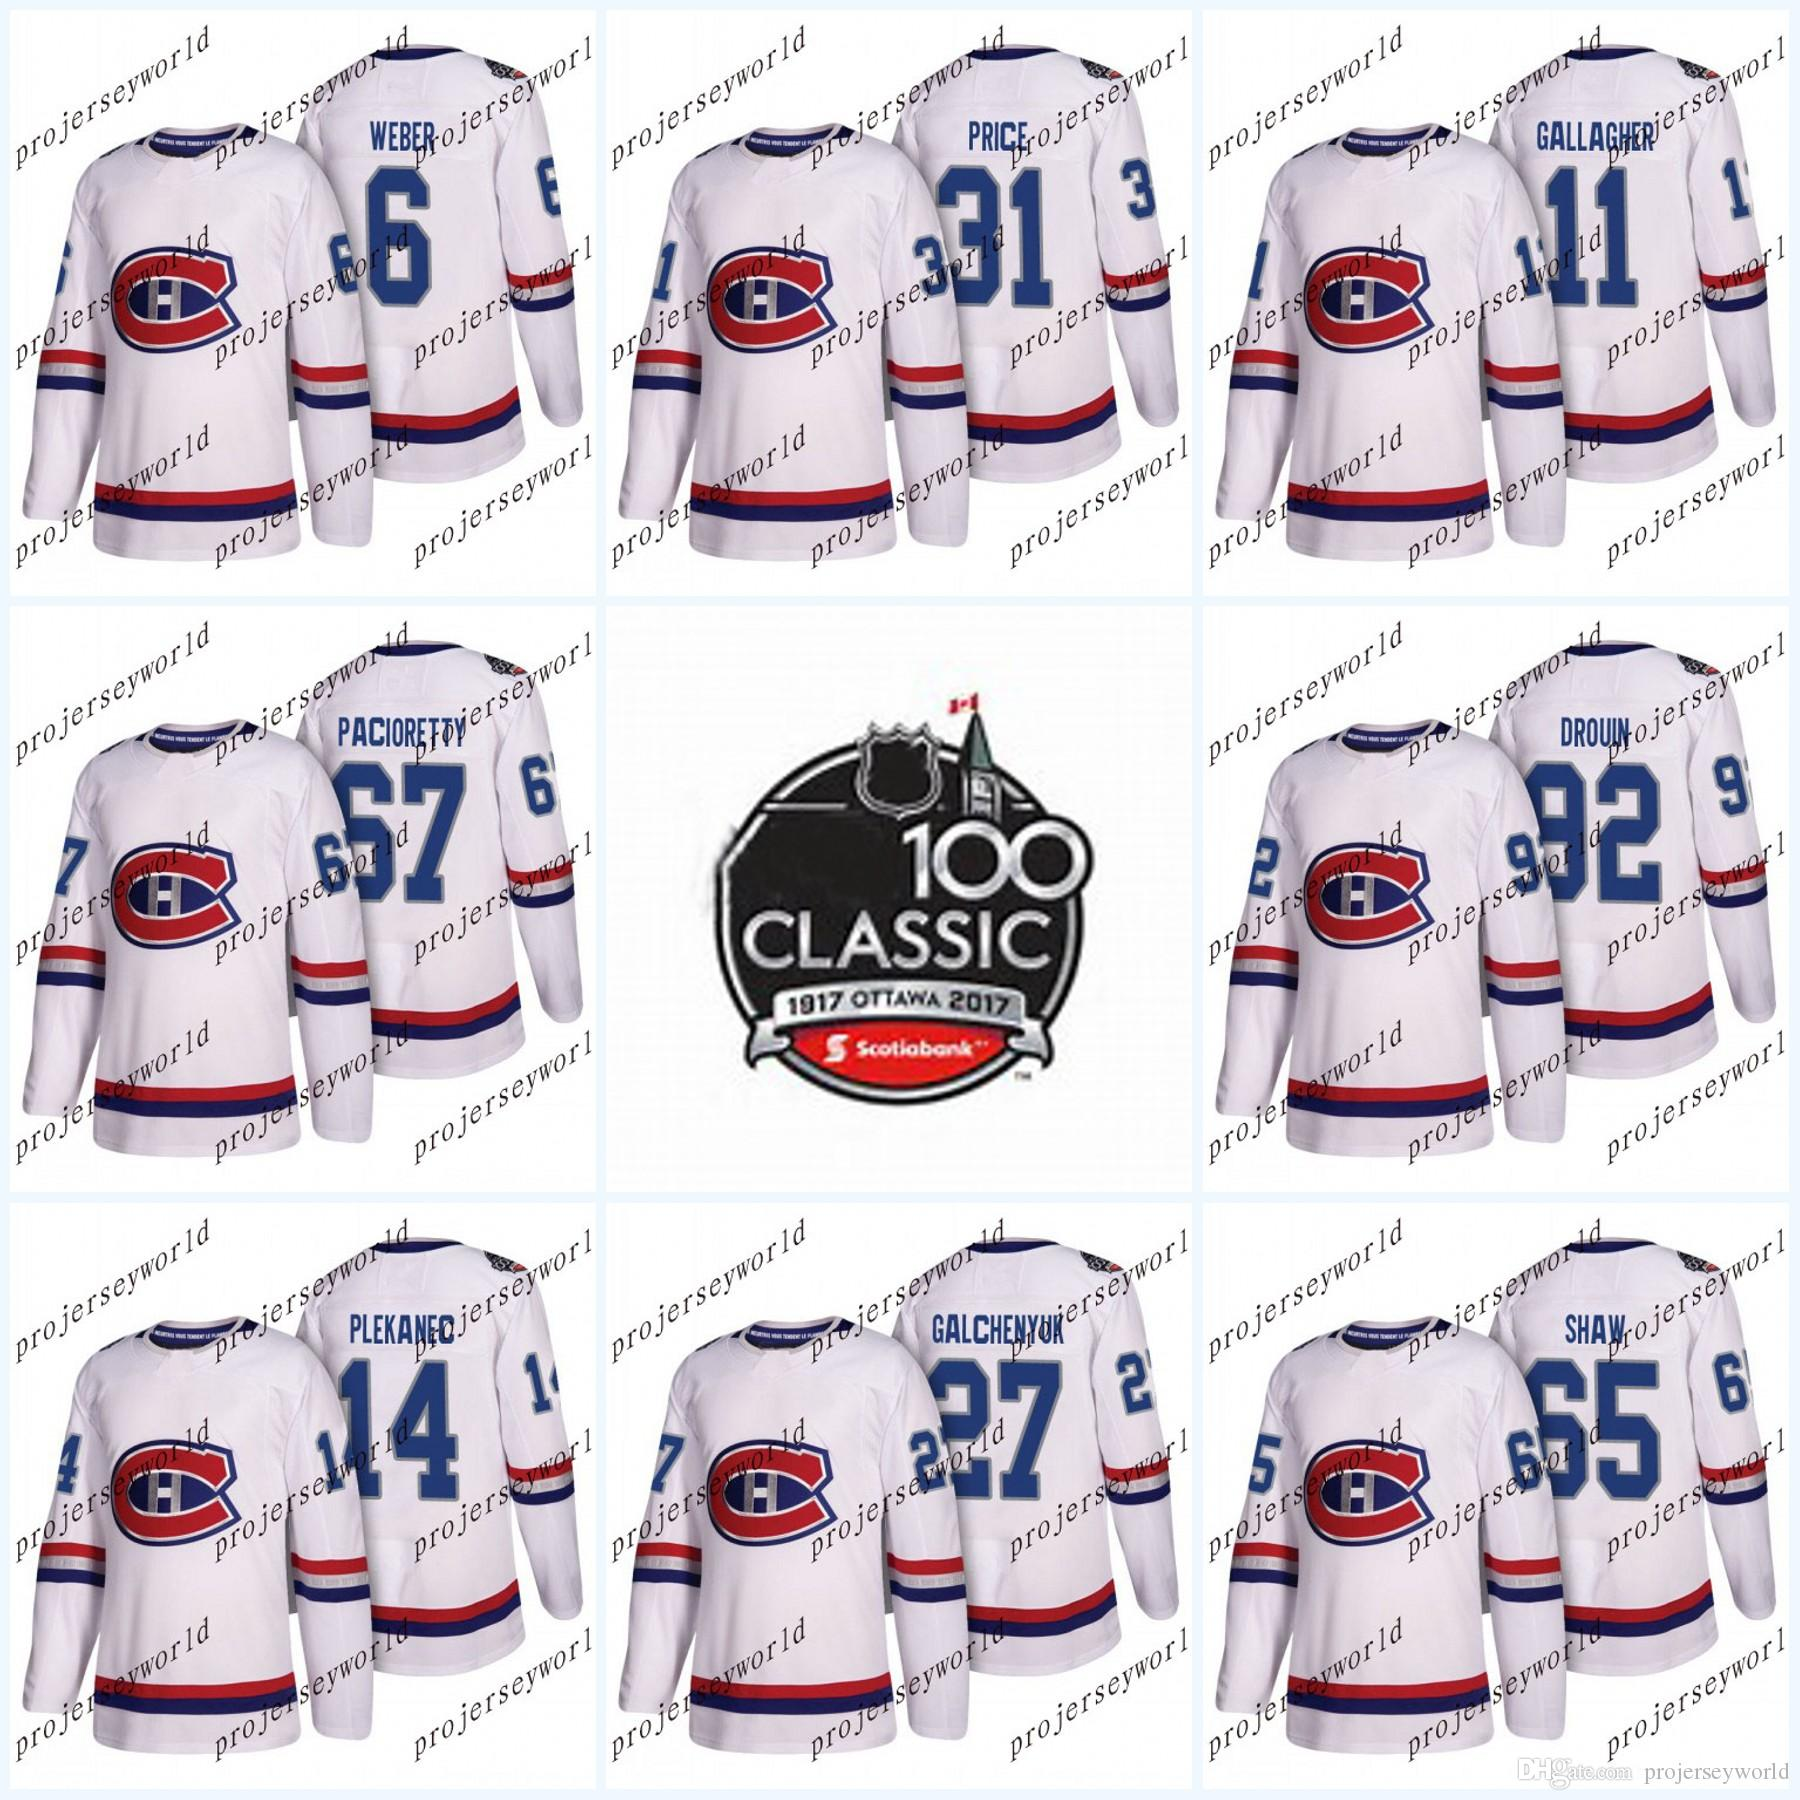 75c0666d4 Youth 100th Classic Patch 92 Jonathan Drouin Montreal Canadiens Jerseys 31  Carey Price 6 Shea Weber 11 Brendan Gallagher Ice Hockey Jerseys 100th  Classic ...